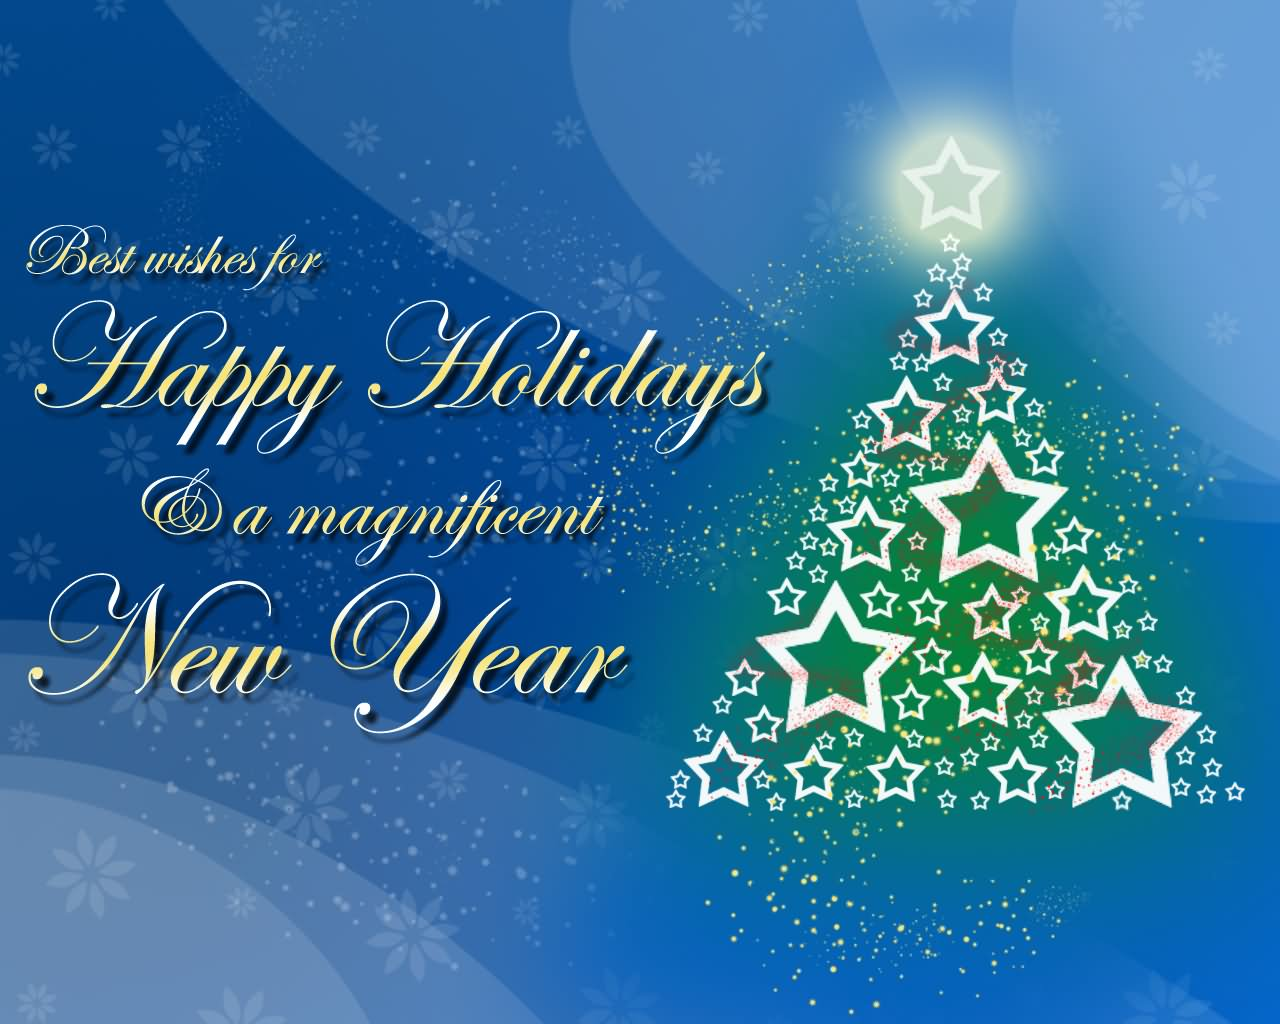 Best Wishes For Happy Holidays And A Magnificent New Year Greeting Picture